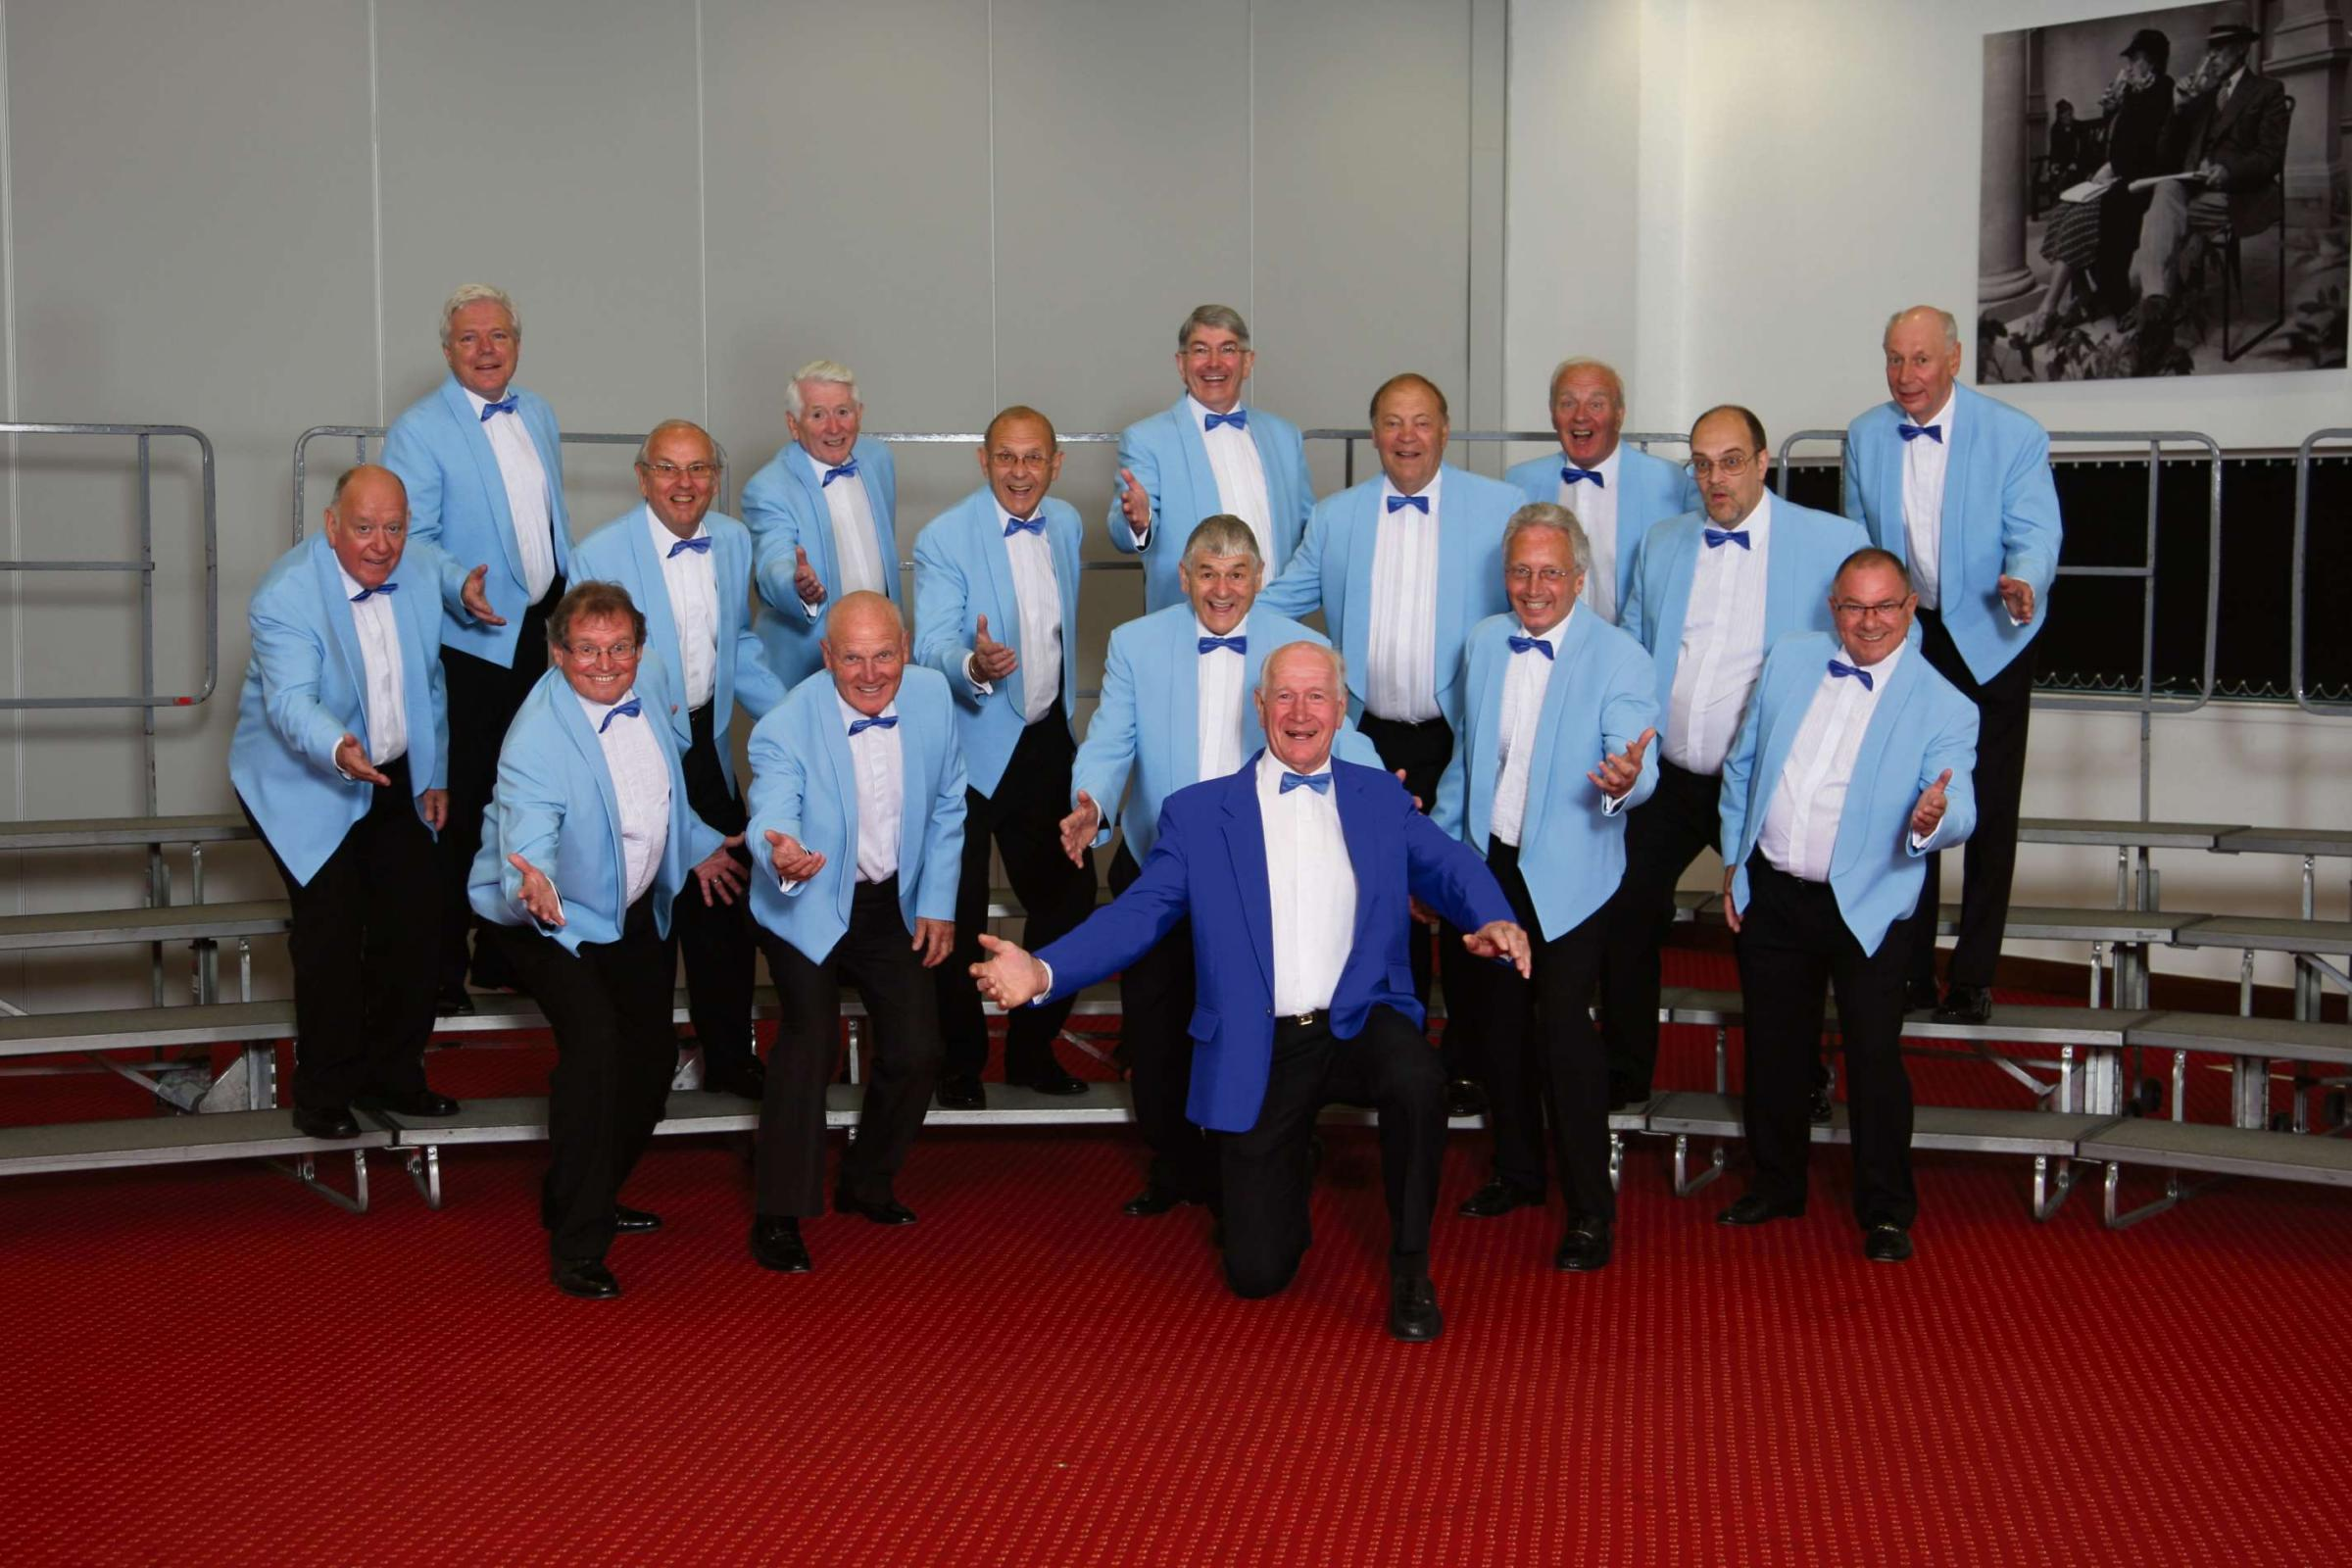 WINNERS: Vale Harmony at the Barbershop Convention